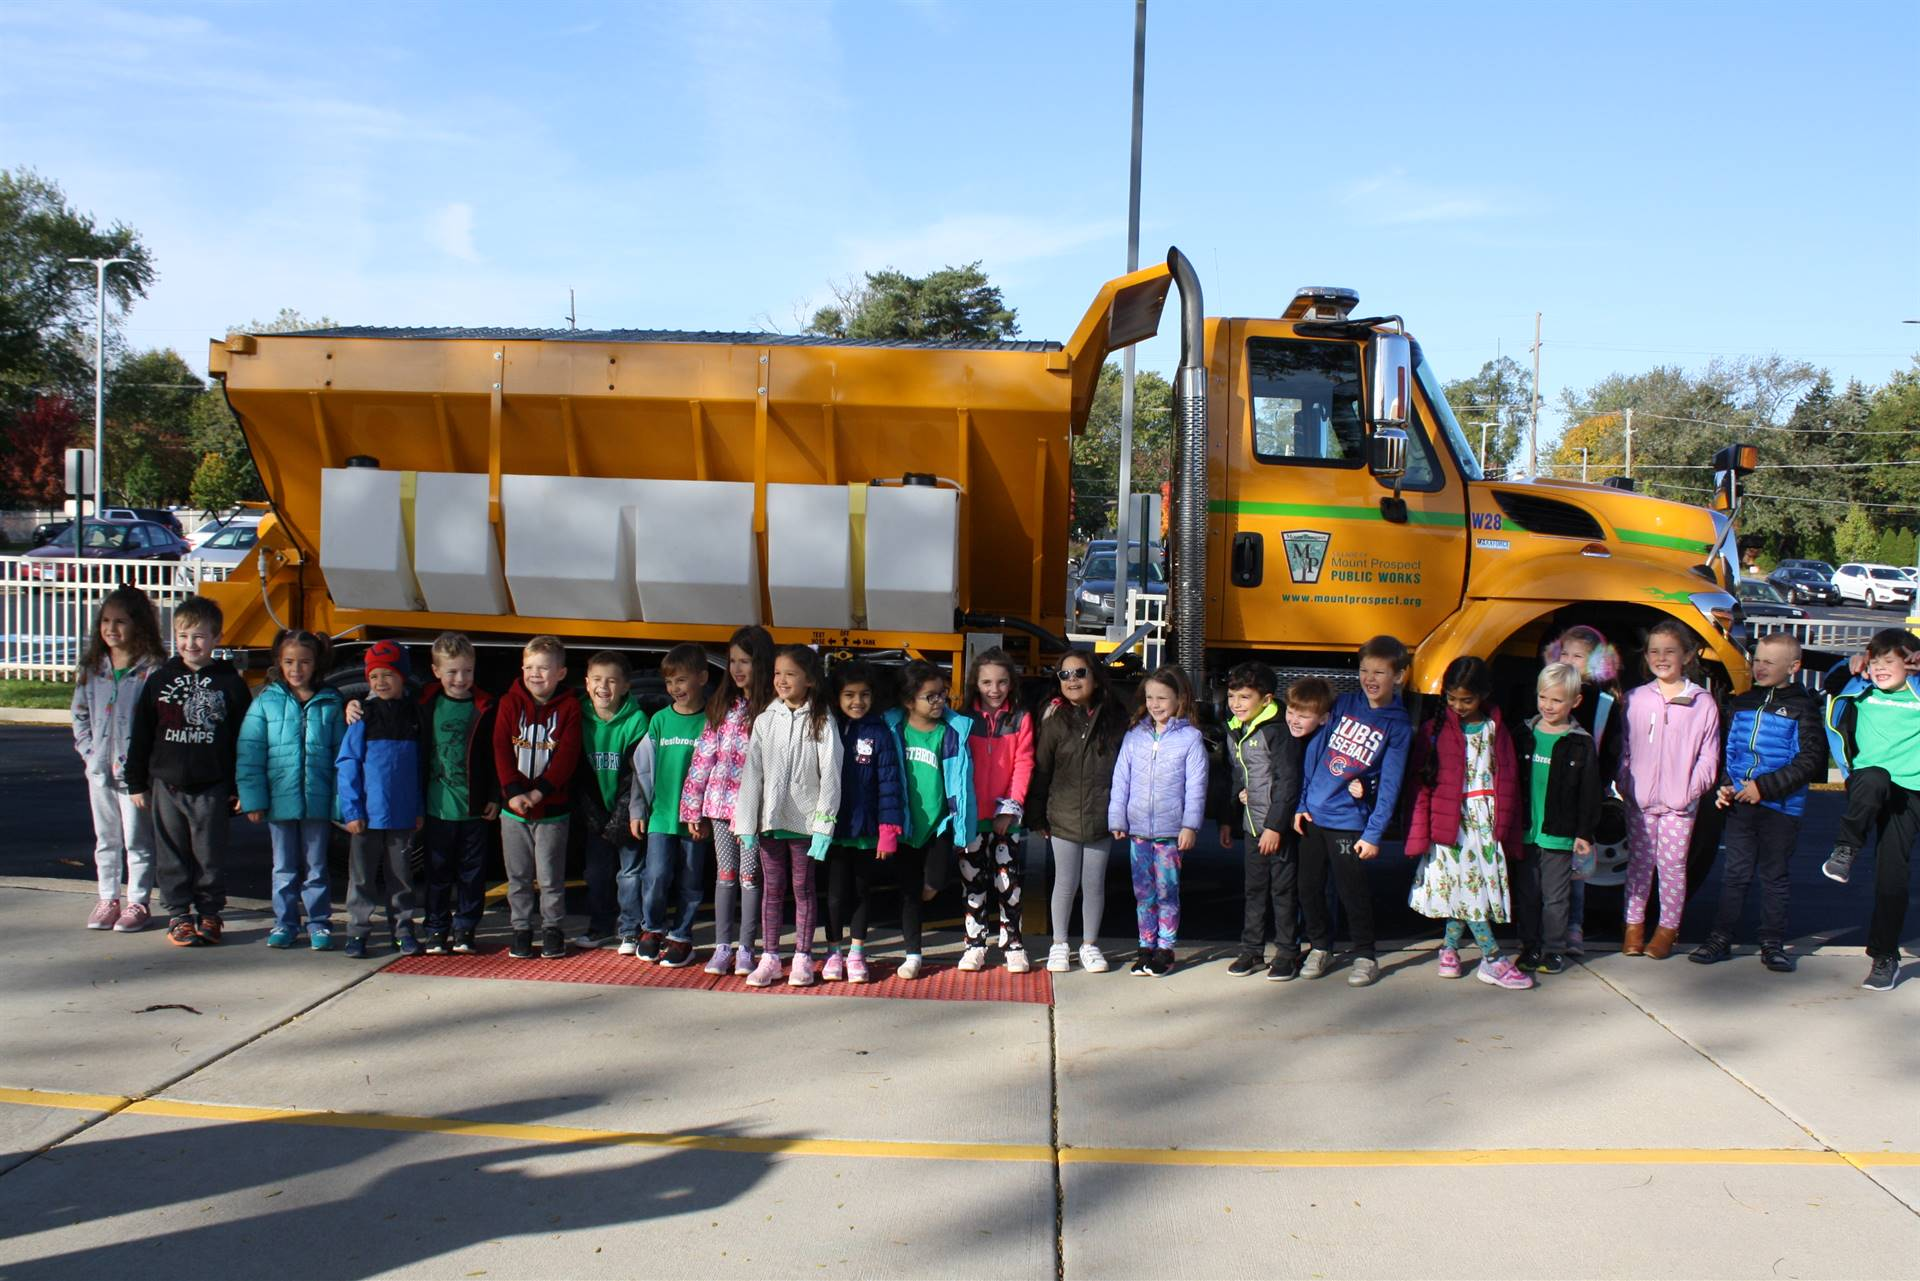 Public Works Ride to School